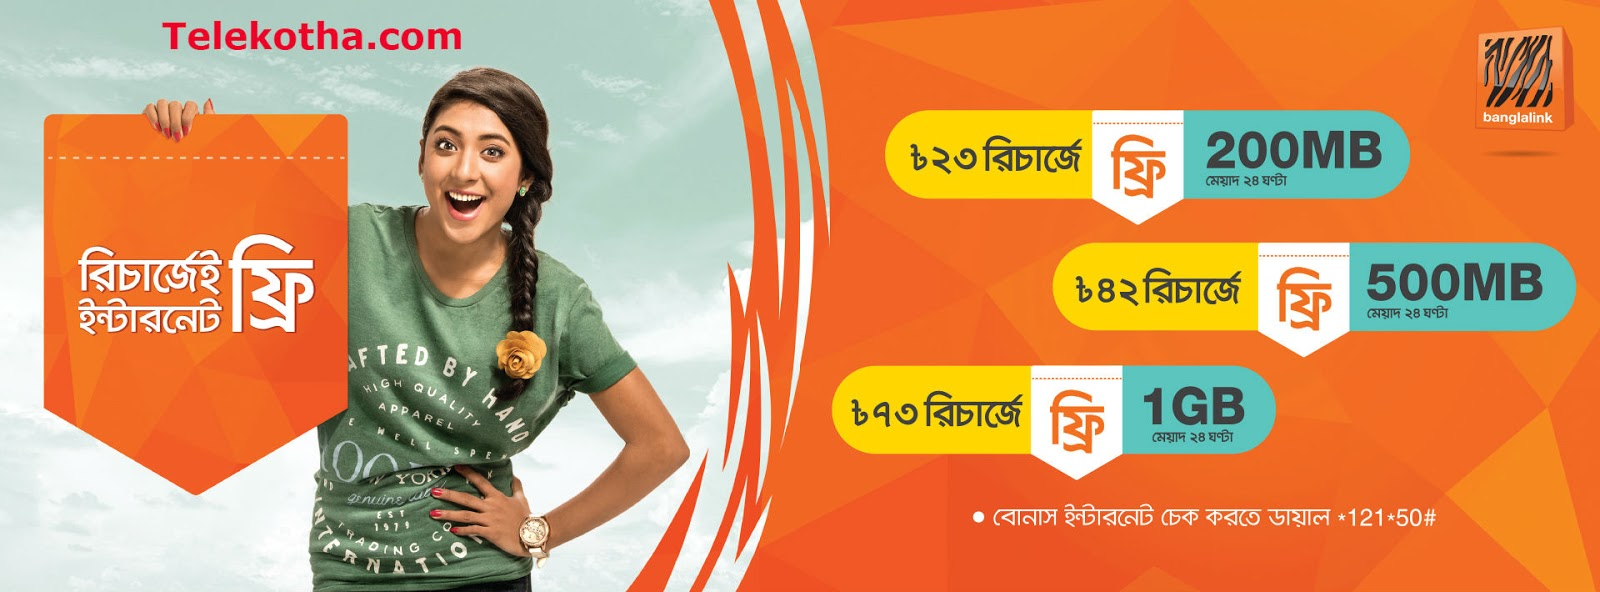 Banglalink FREE internet on Recharge ! 23TK, 42TK and 73TK will get 200MB, 500MB and 1GB internet Bonus with 24 hours Validity